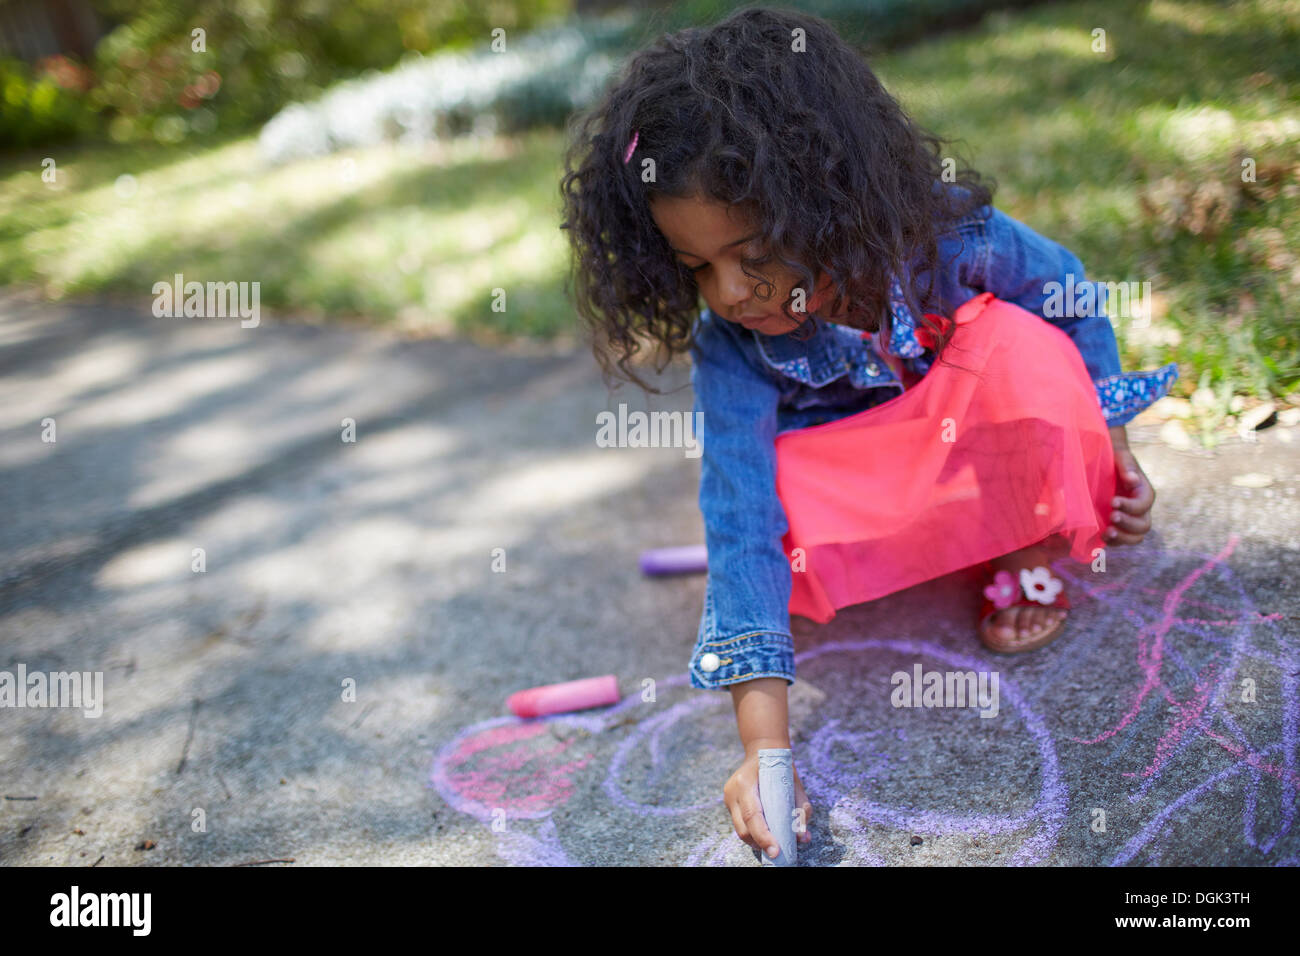 Girl drawing with chalk on the sidewalk - Stock Image